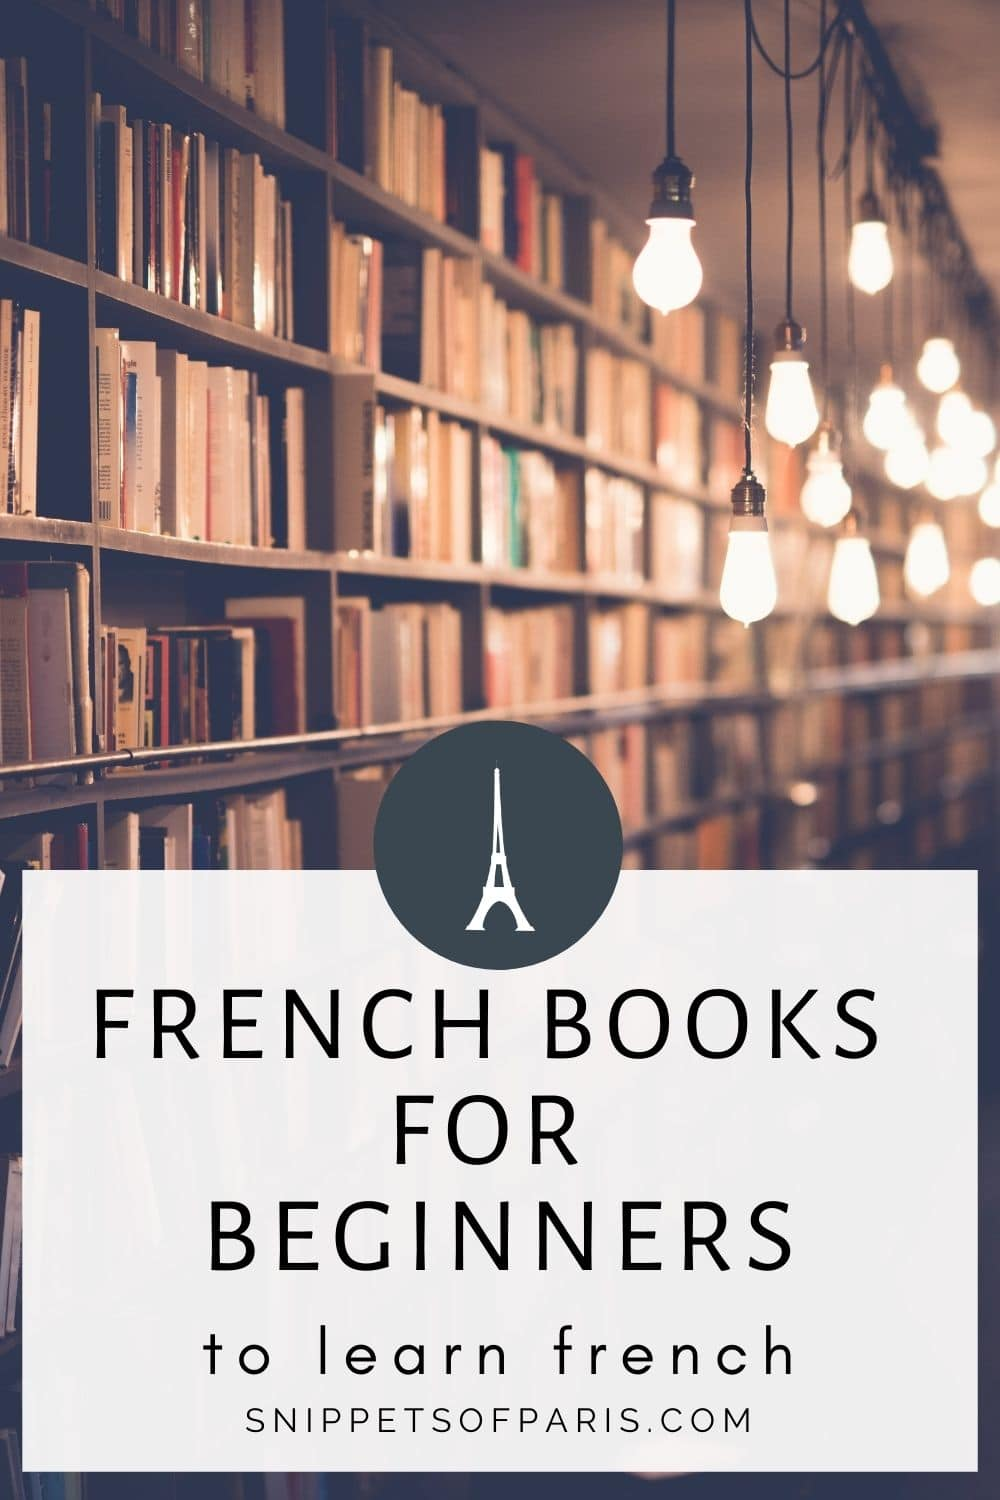 8 Easy French books for beginners